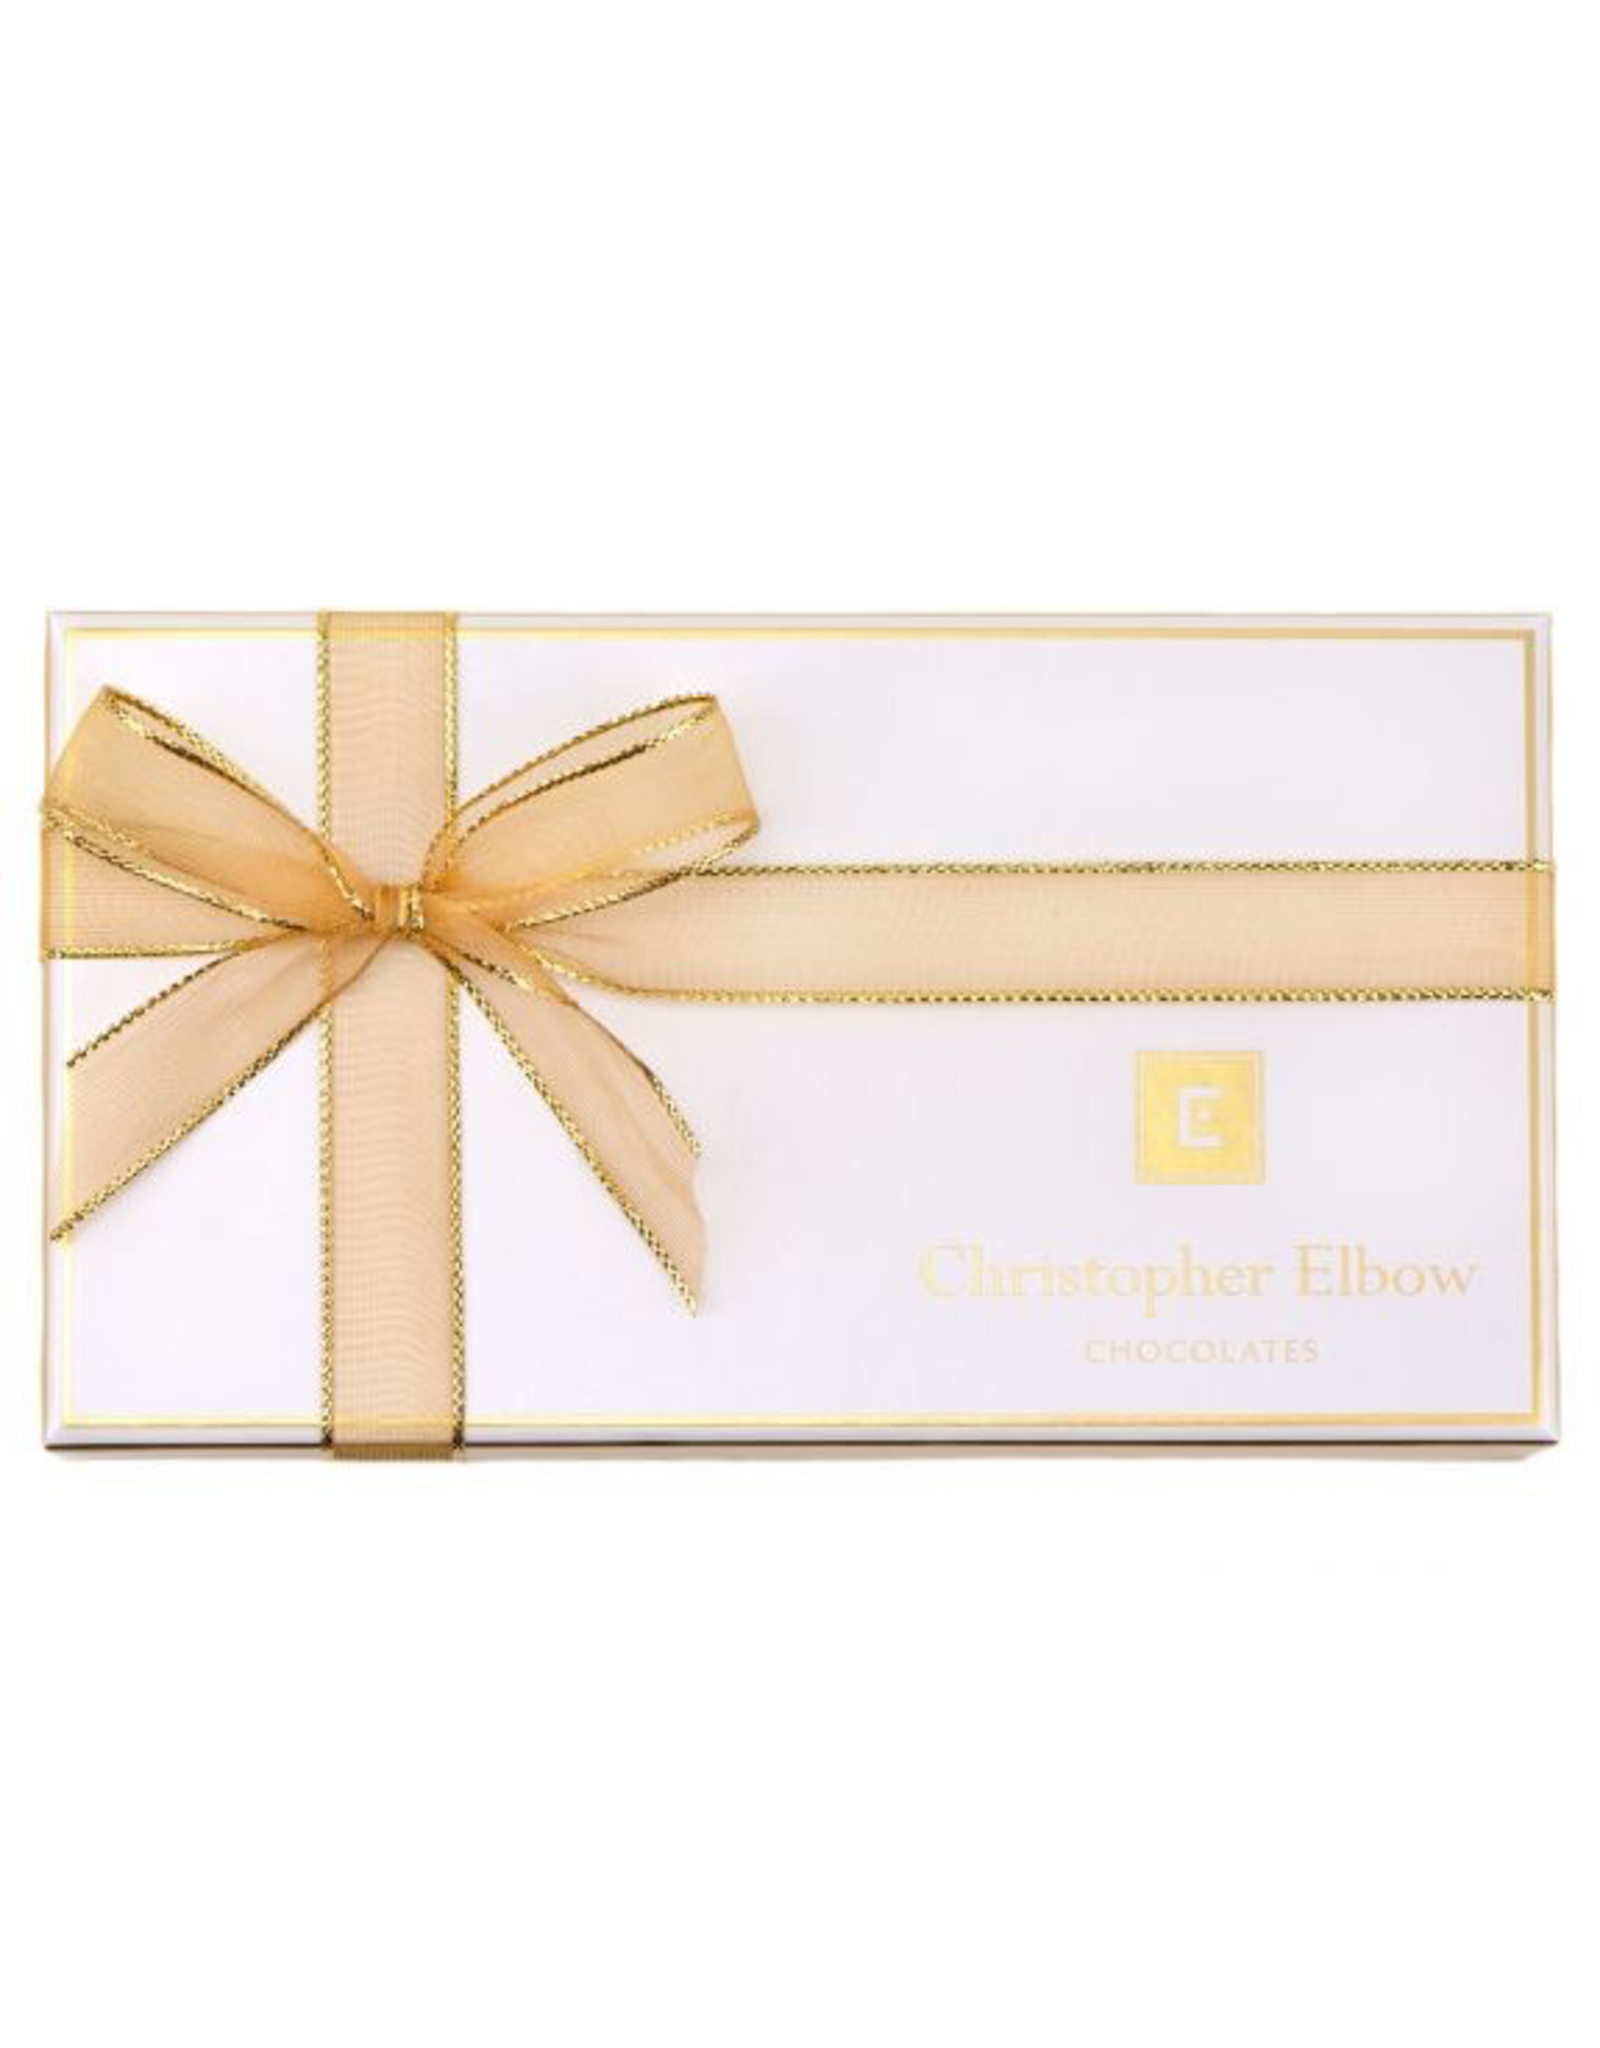 Chocolates Christopher Elbow, 8 Piece Winter Collection Box Assorted